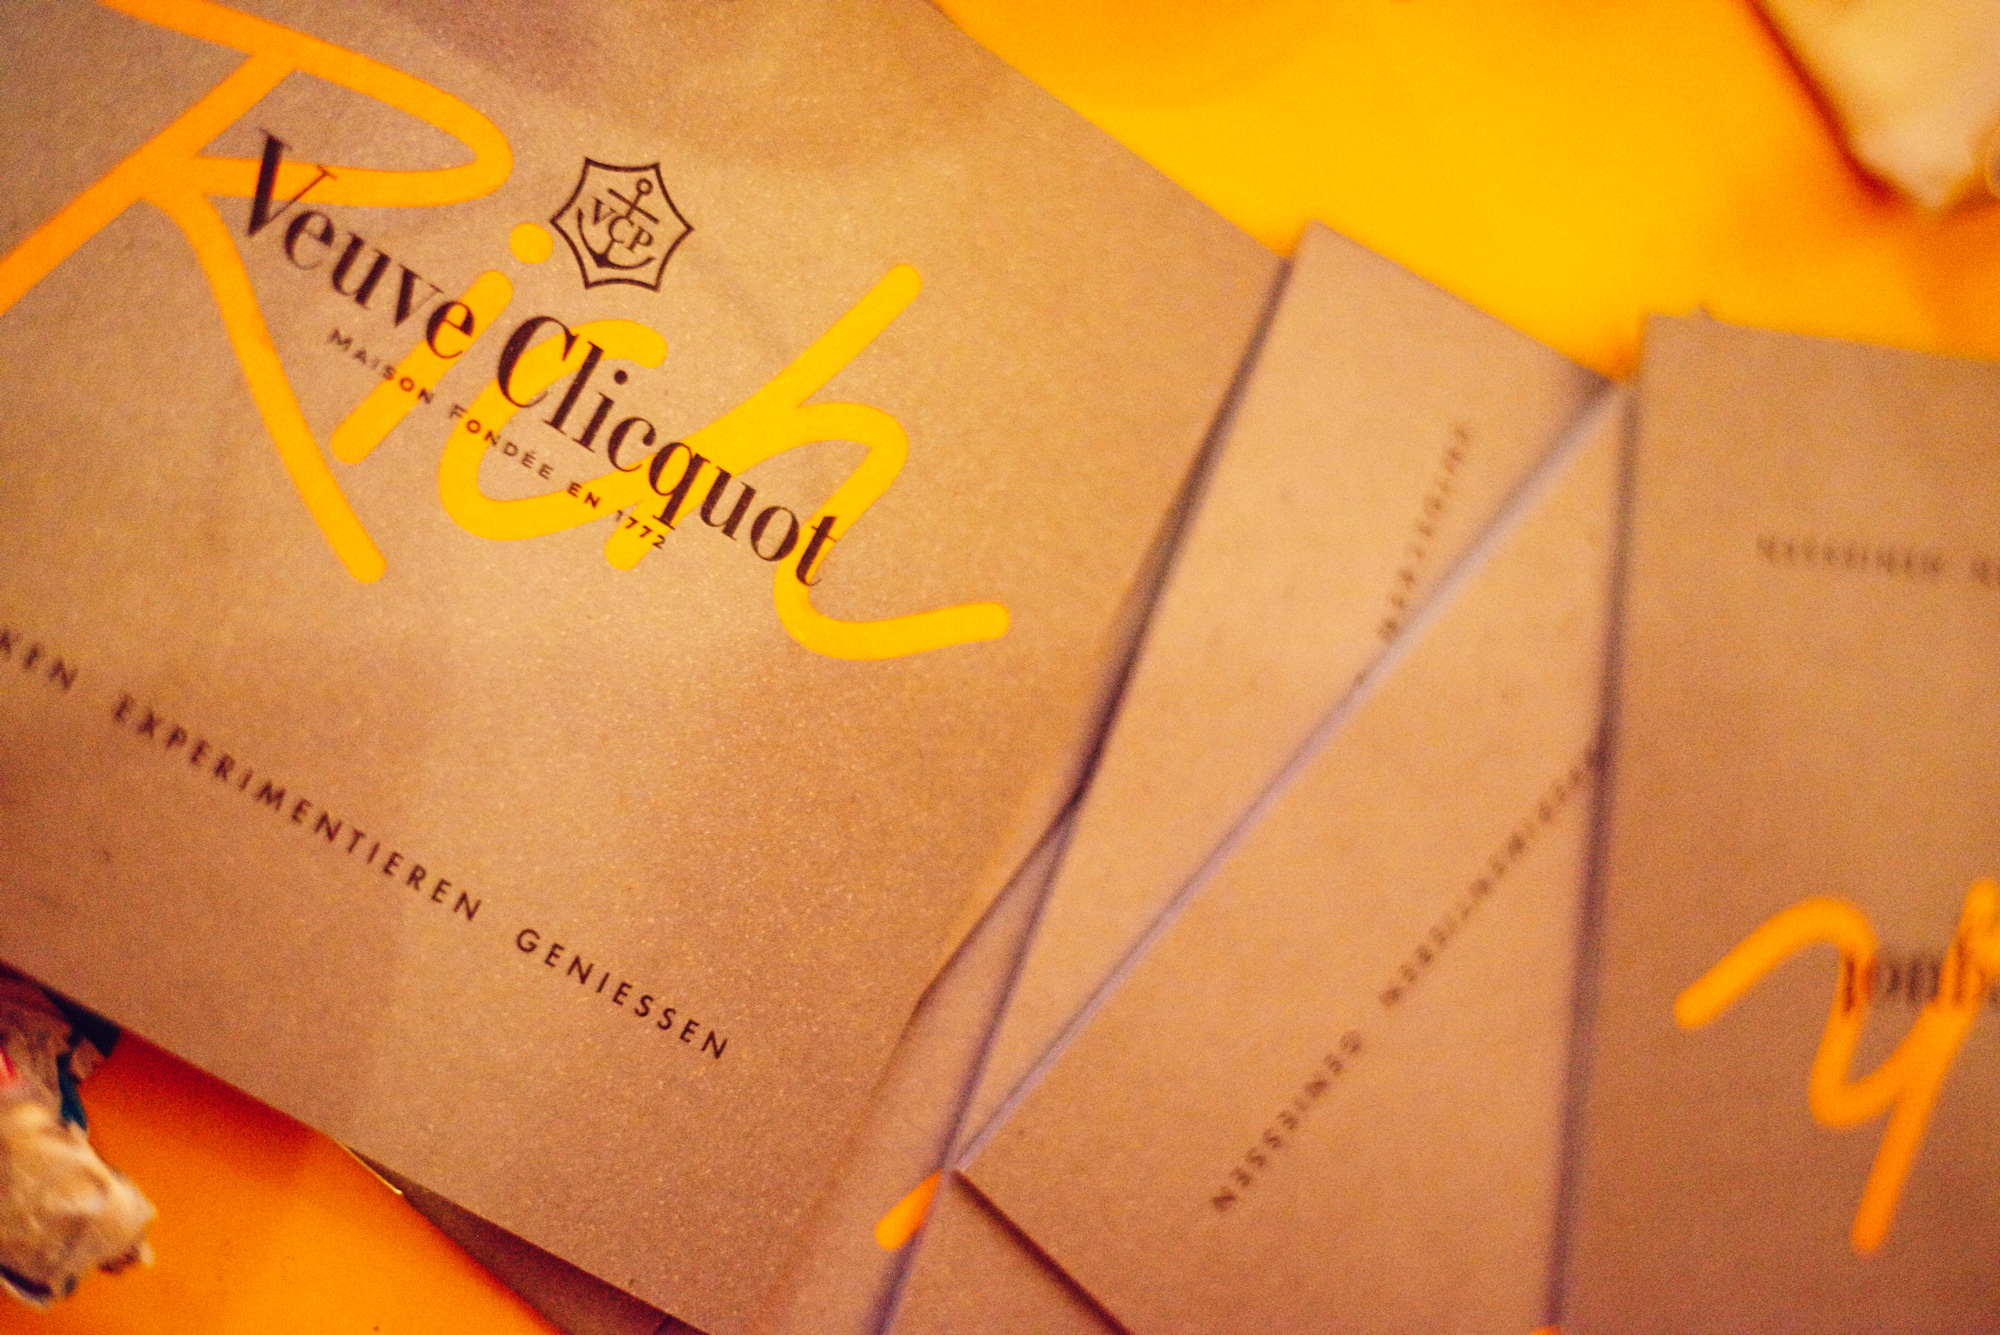 veuve-clicquot-marina-hoermanseder-after-show-party-20